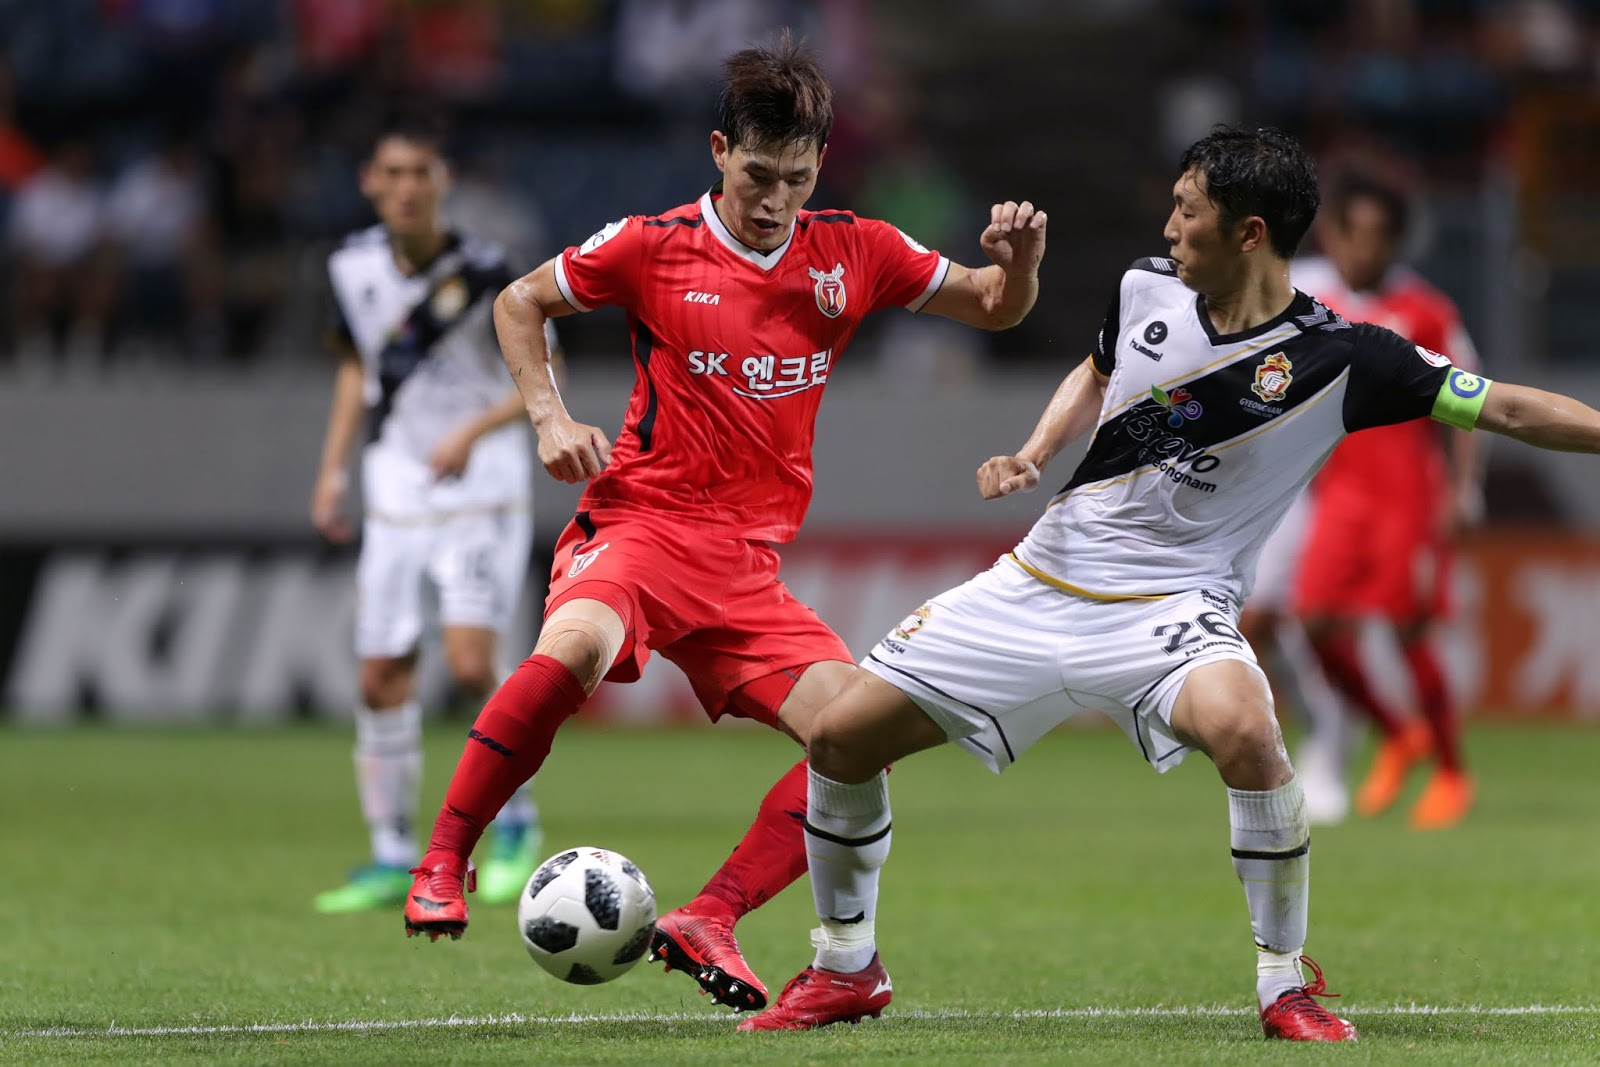 K league 1 Preview: Jeju United vs Daegu FC